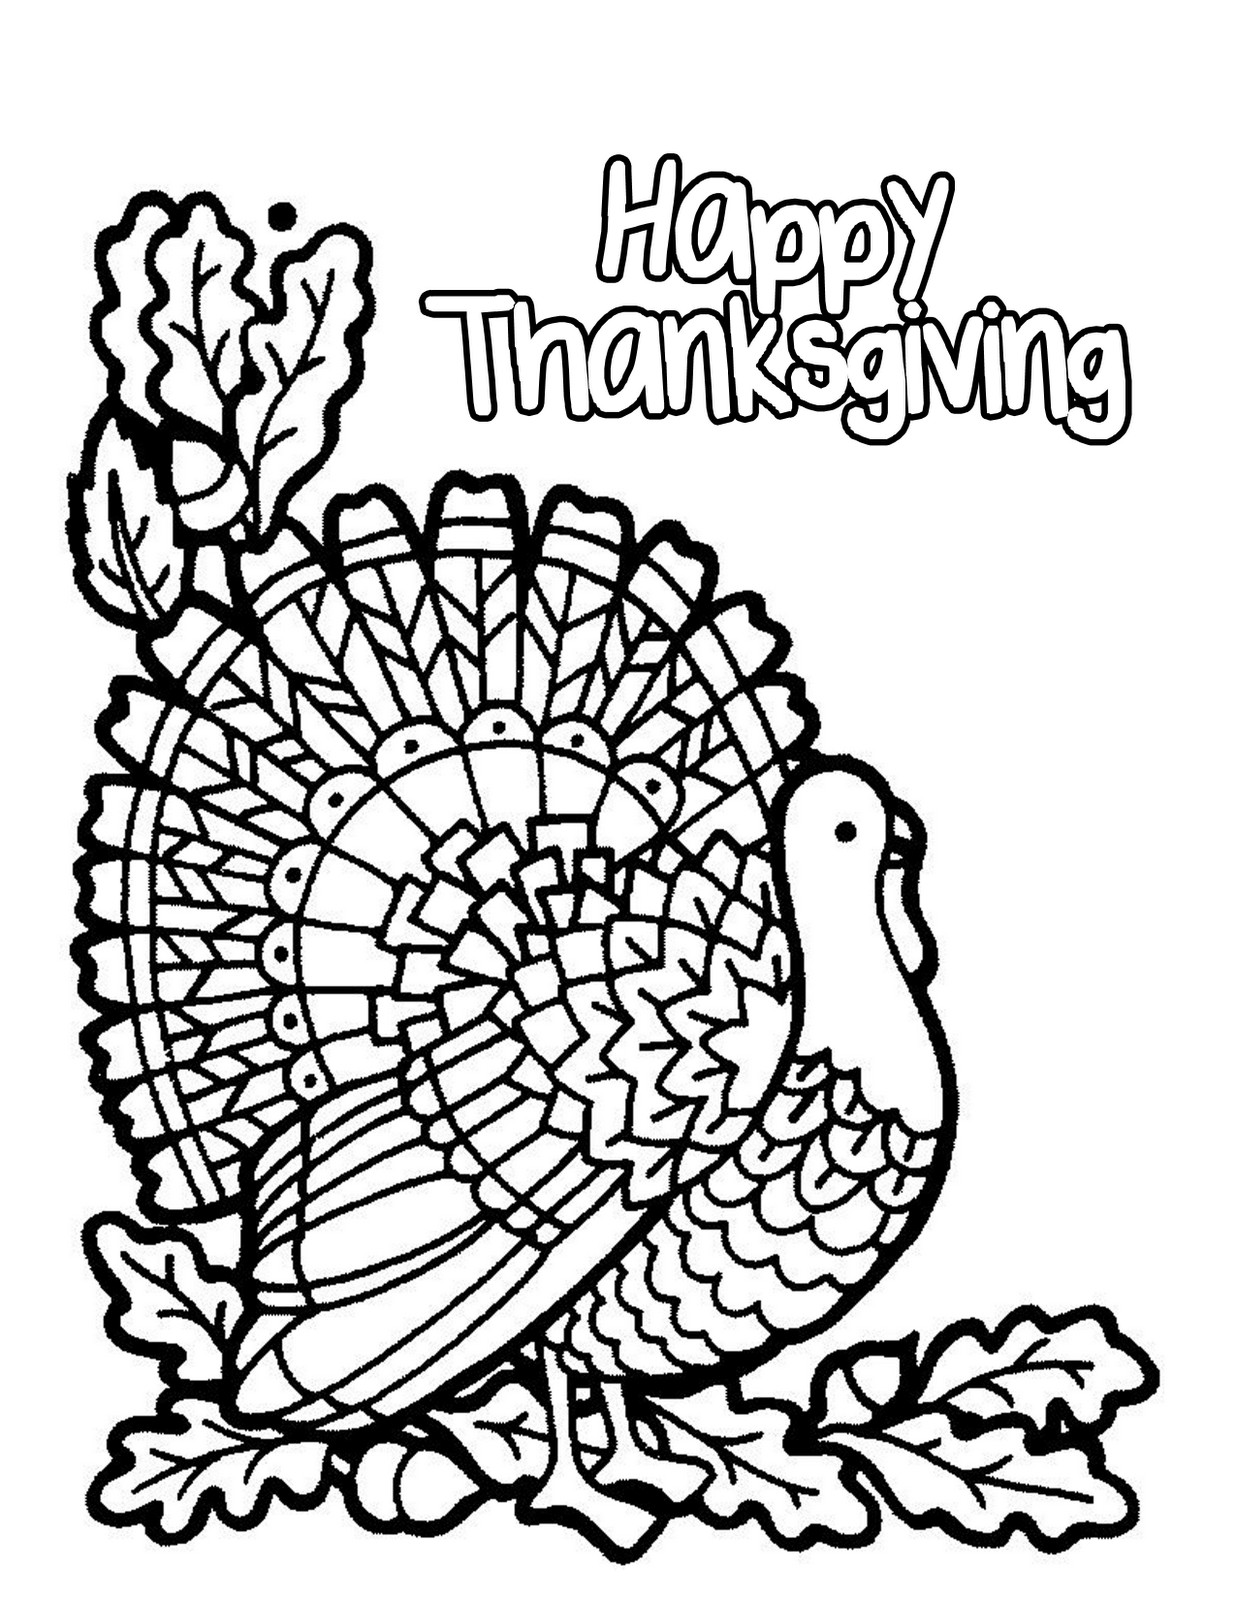 christian thanksgiving coloring pages printable religious thanksgiving coloring pages coloring thanksgiving pages coloring christian